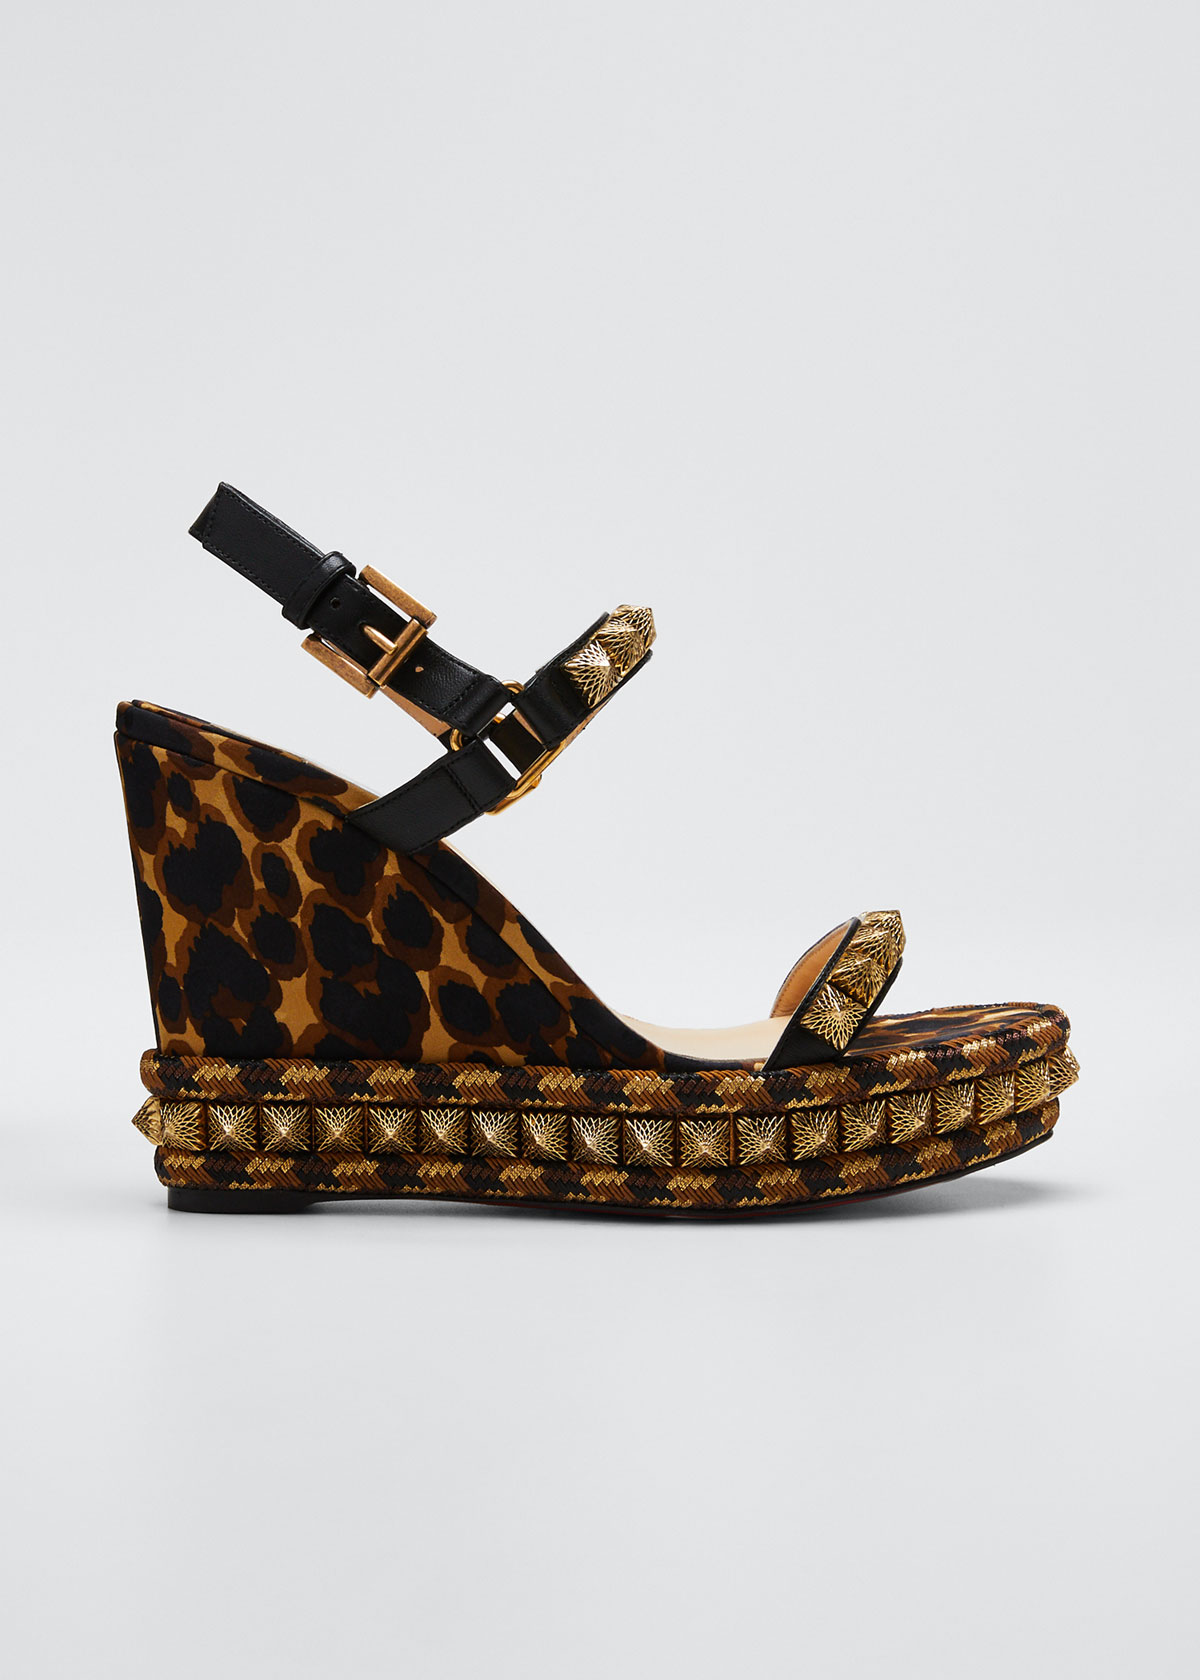 Christian Louboutin Shoes PIRA RYAD LEOPARD RED SOLE ESPADRILLES